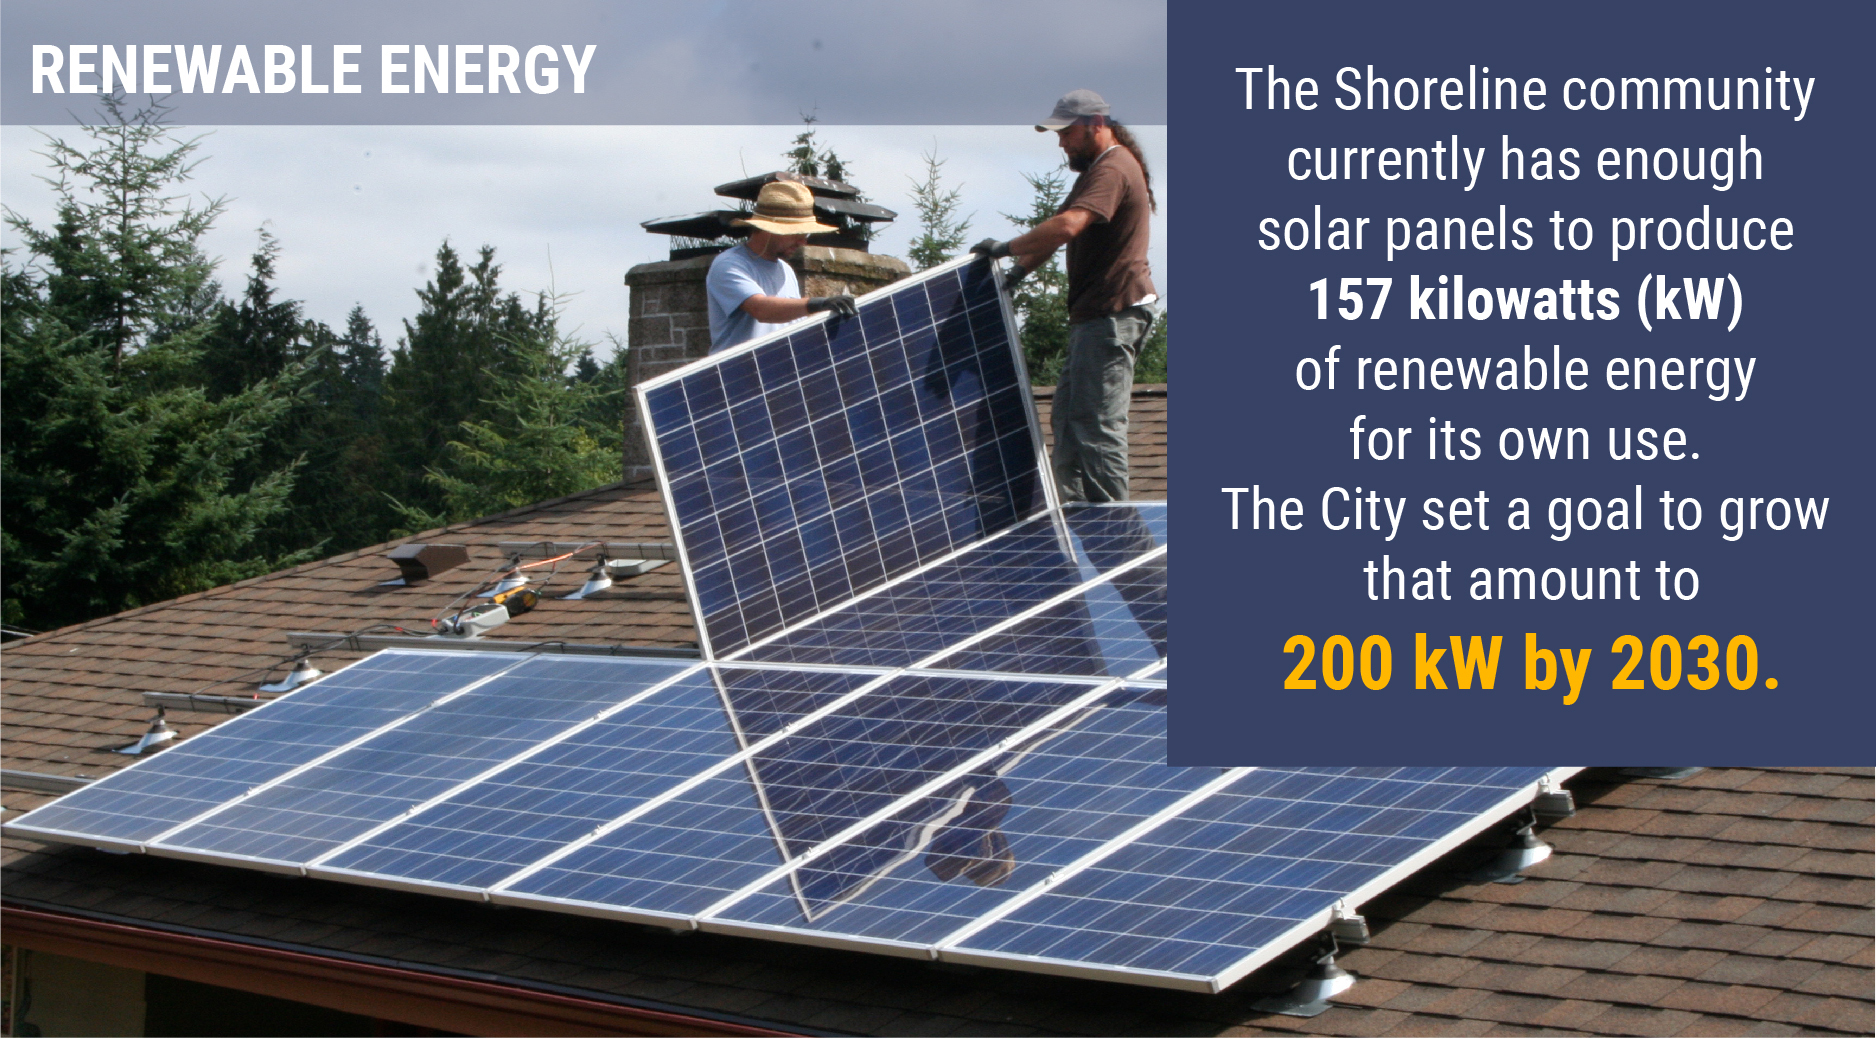 Infographic showing renewable energy capacity. The Shoreline community currently has the capacity to produce 117 kilowatts of renewable energy for its own use. The City set a goal to grow that amount to 200 kilowatts by 2030.